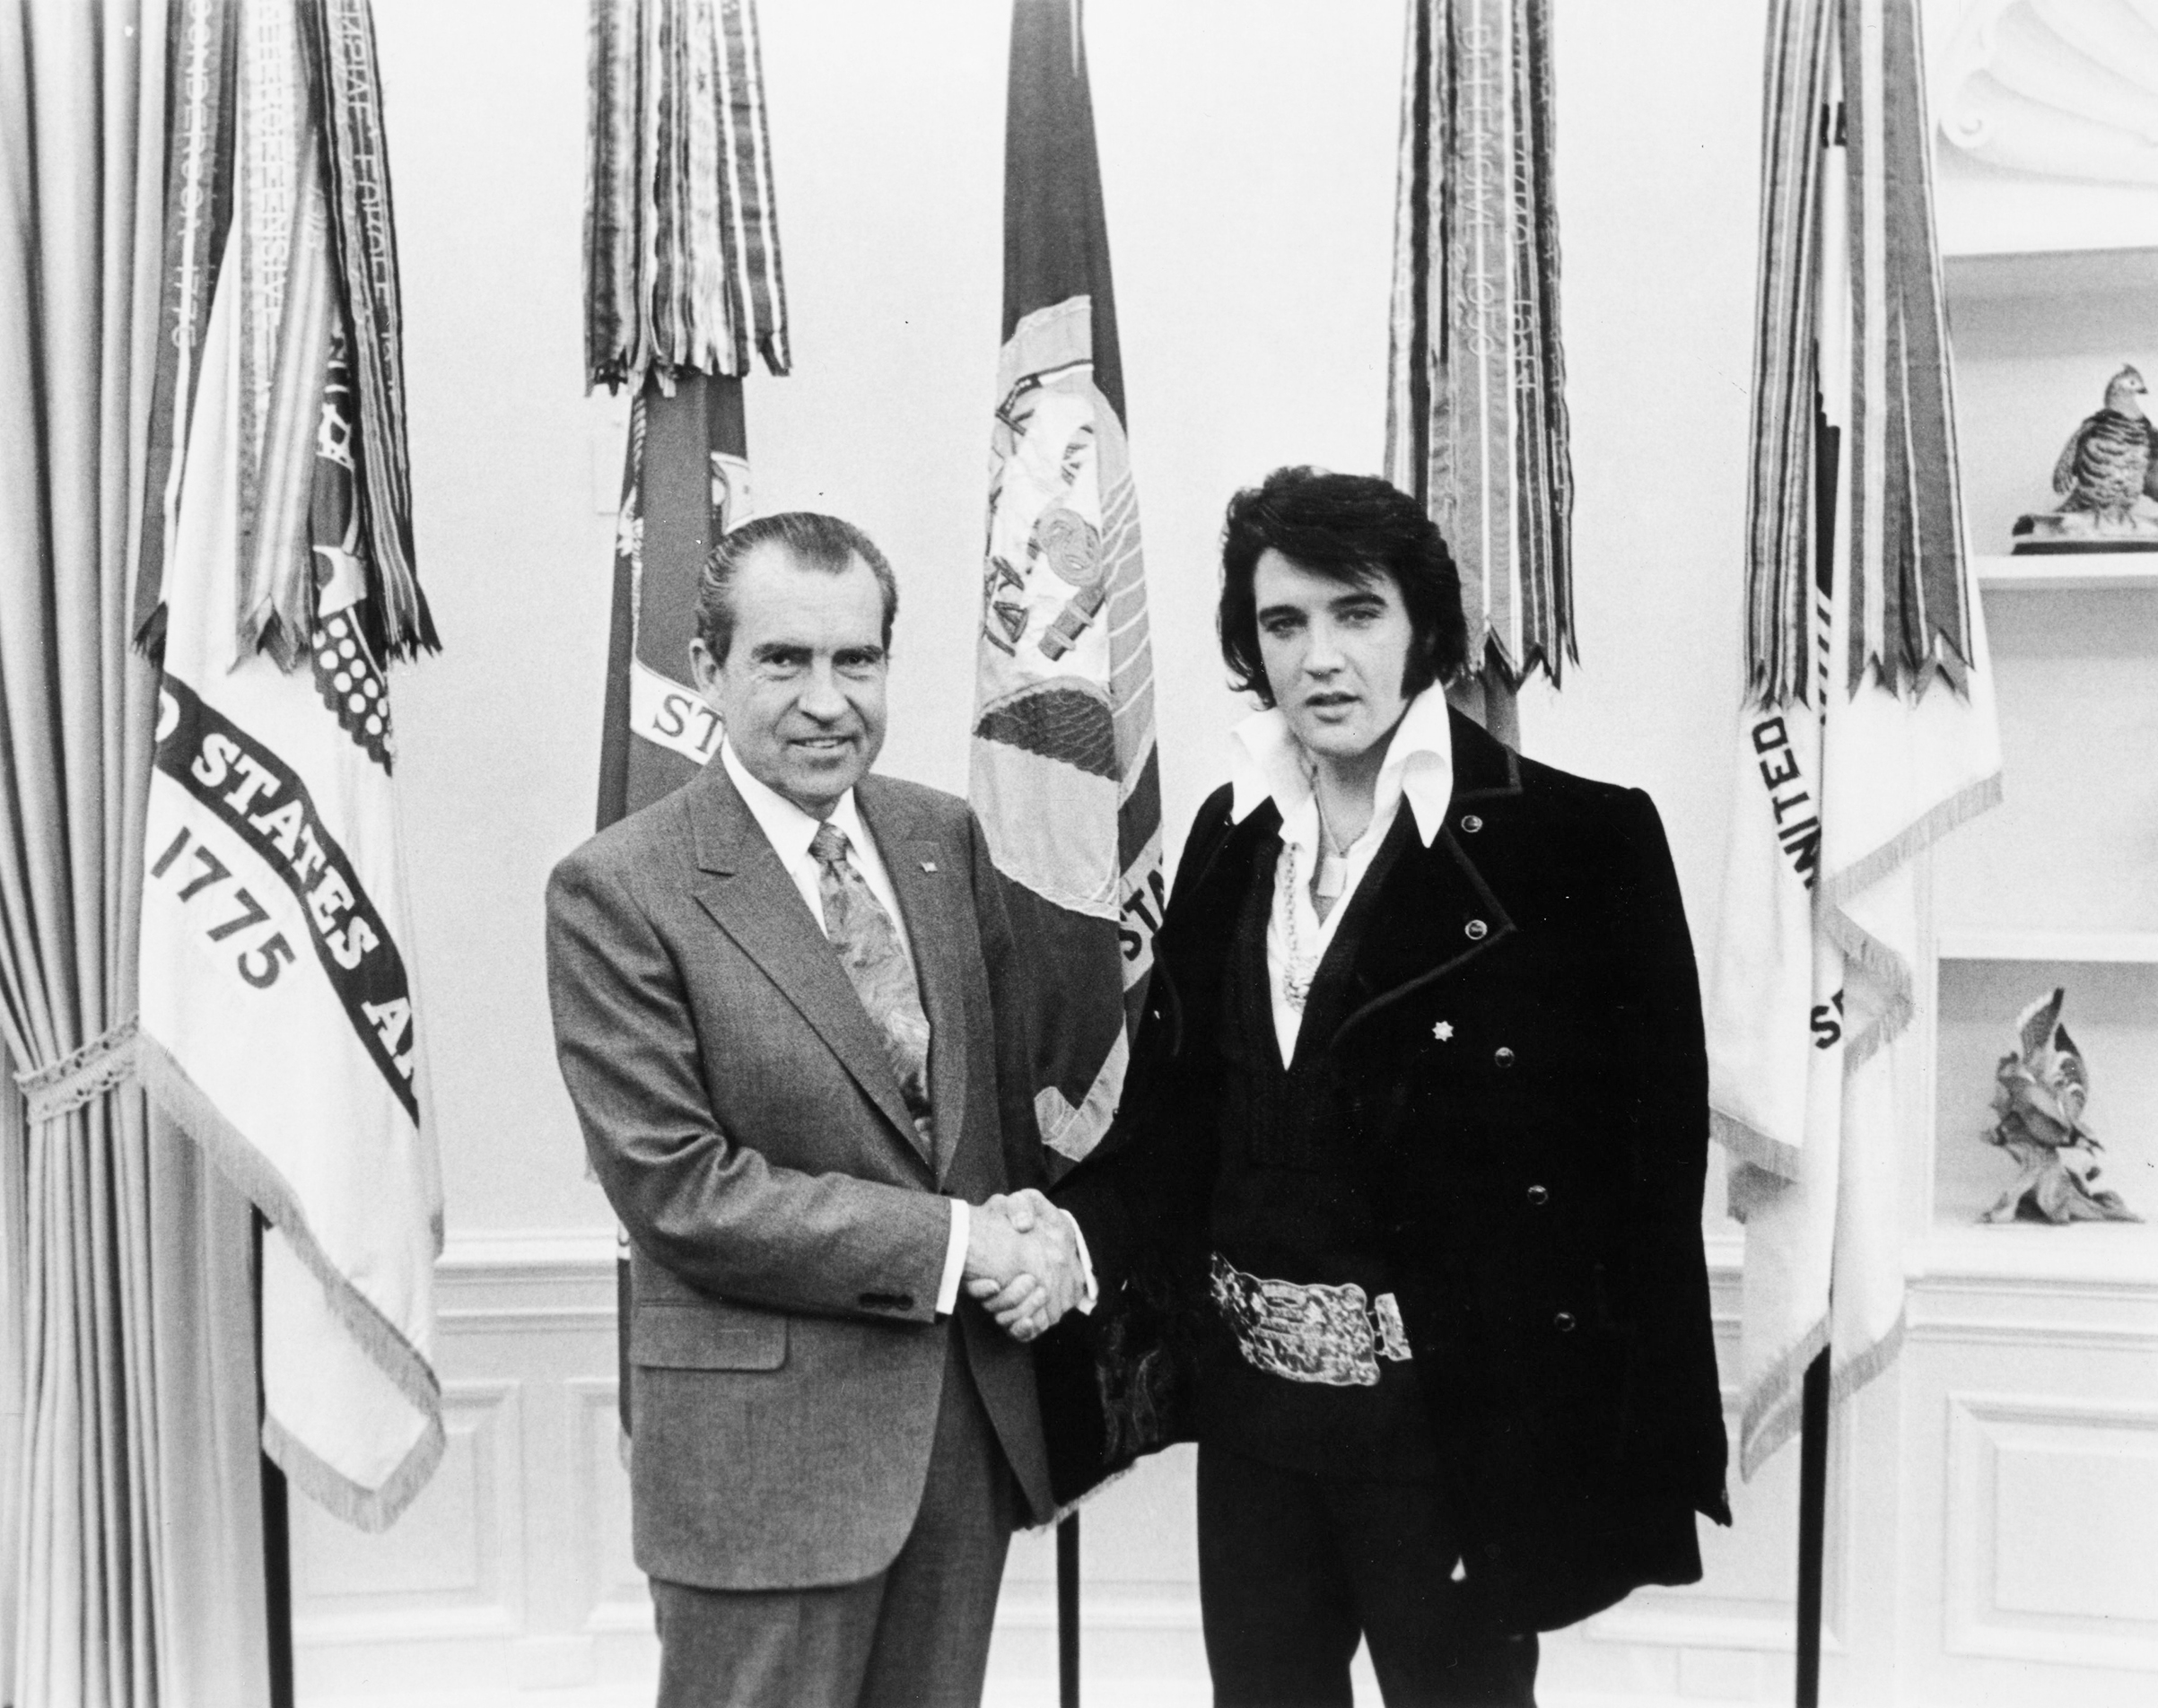 President Nixon and Elvis Presley meet at The White House, December 21, 1970.